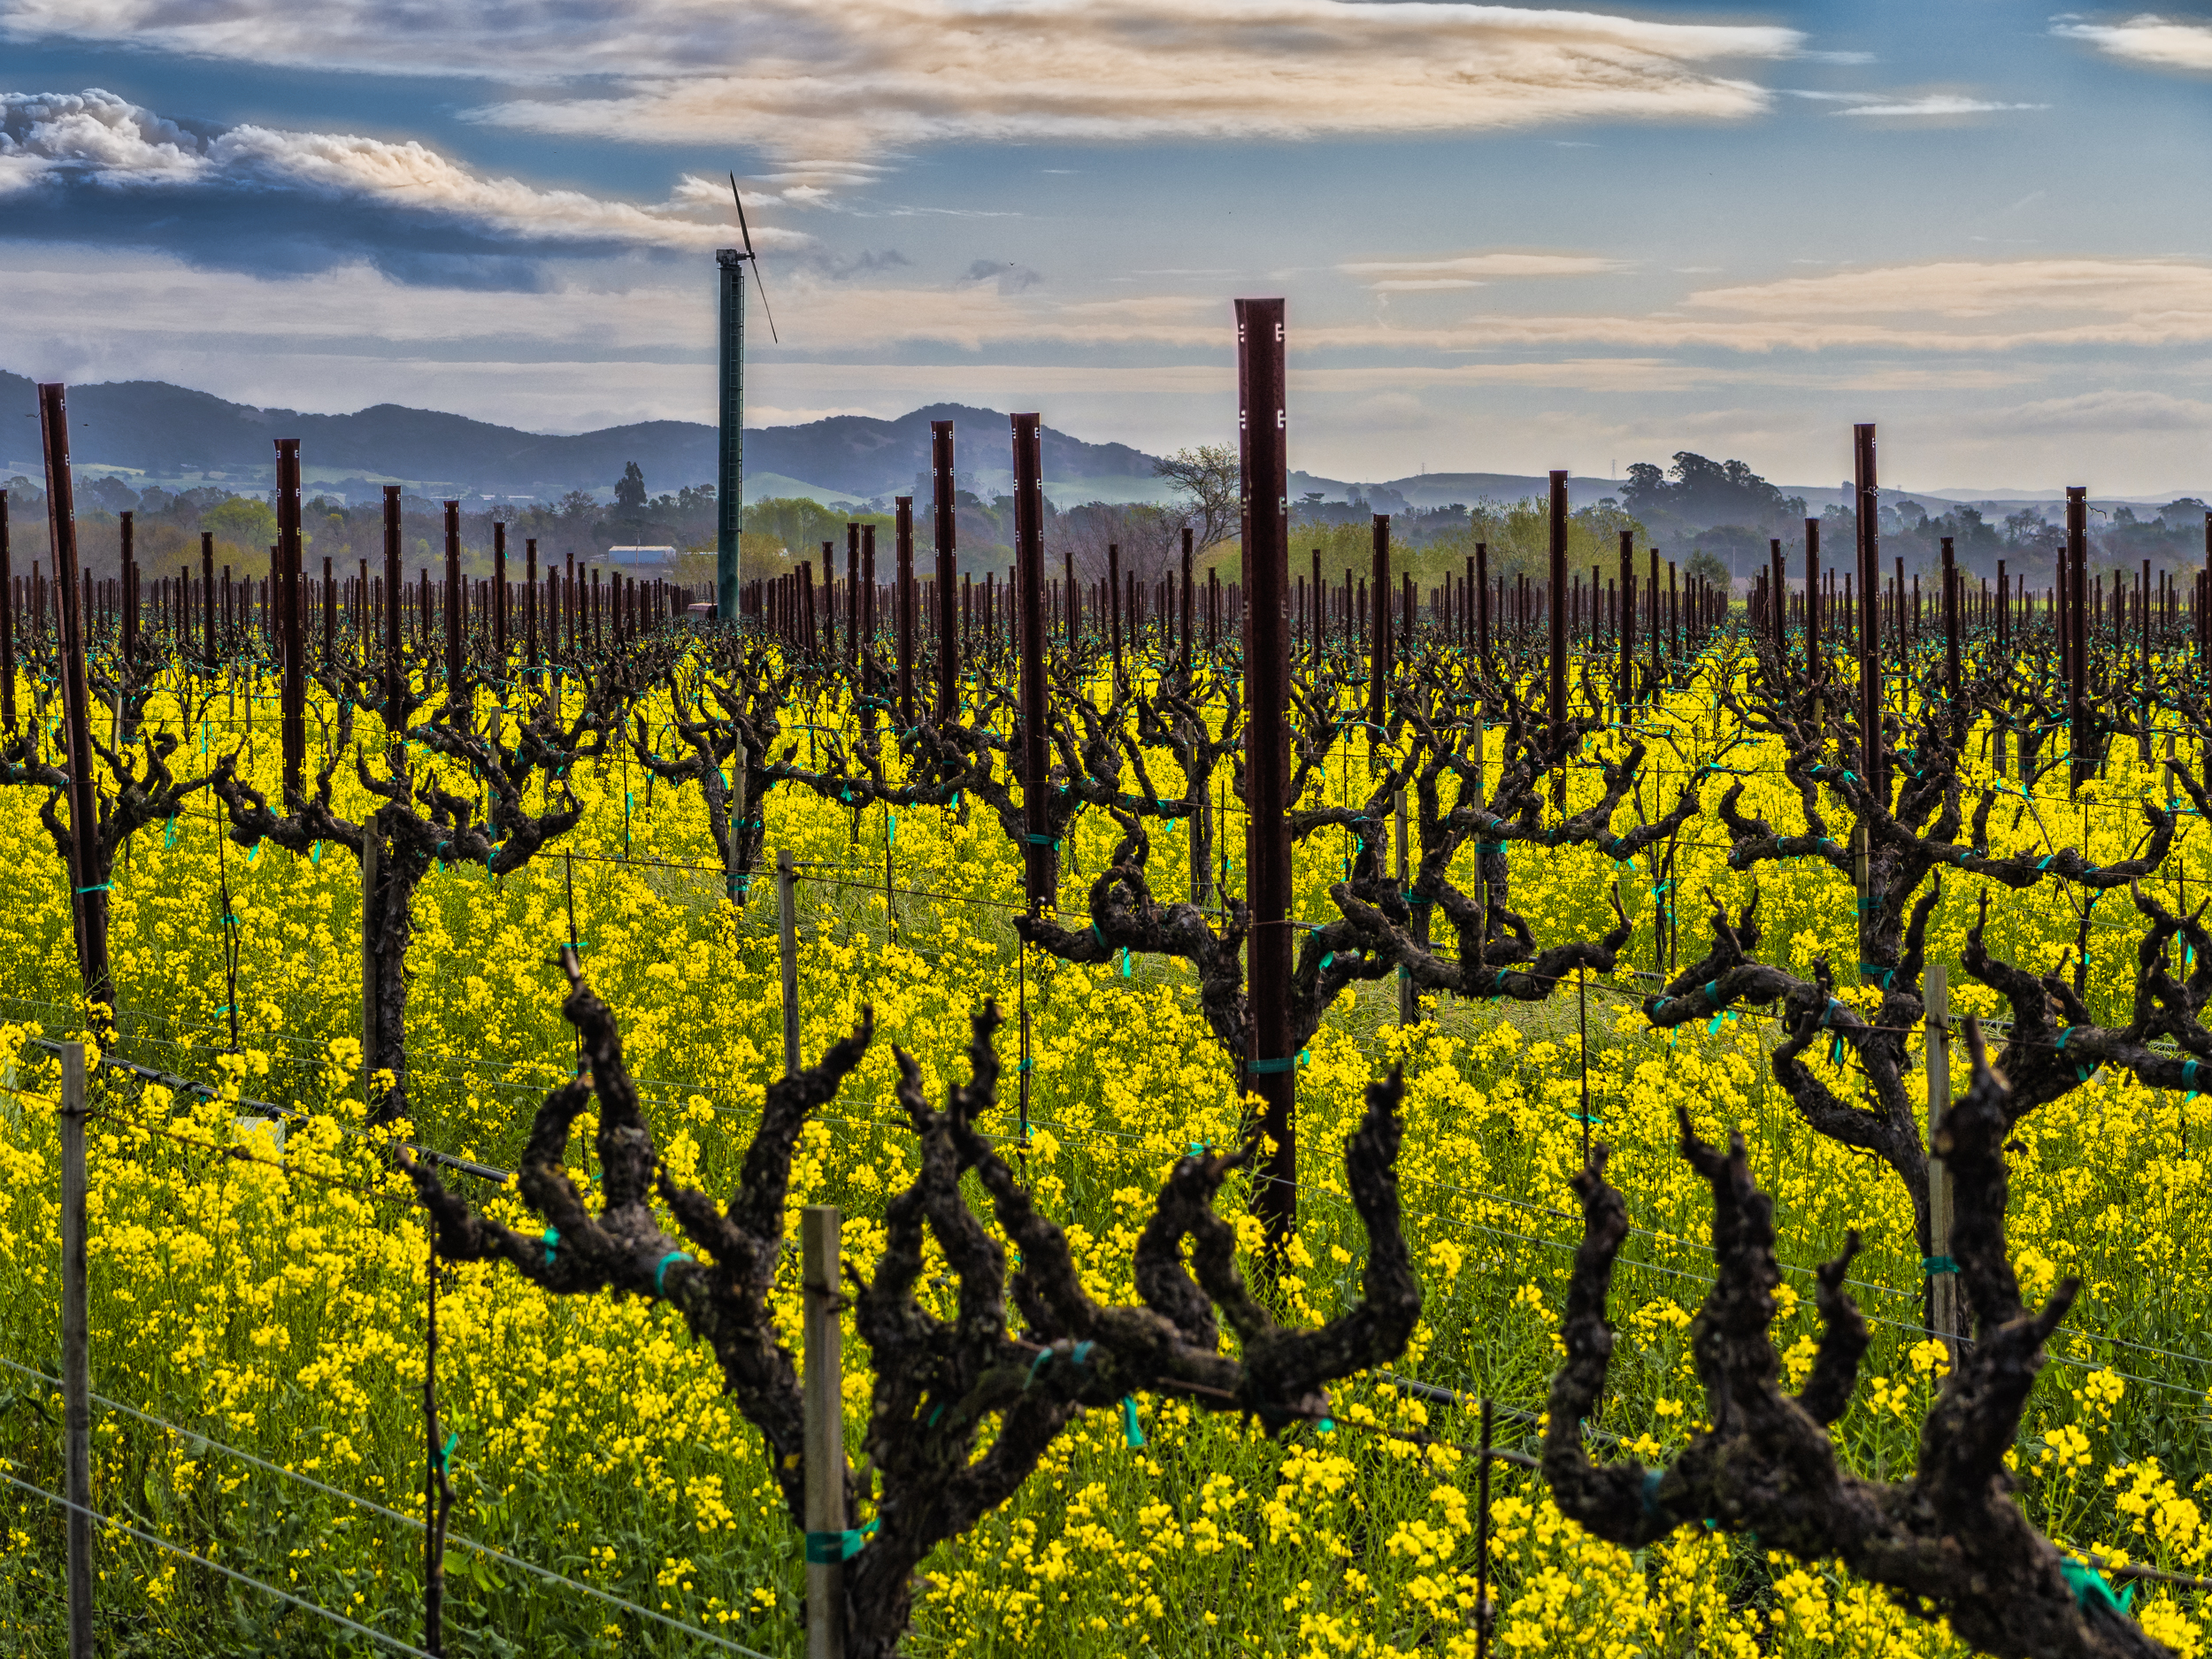 Sonoma_Spring_Morning-17-Edit.jpg